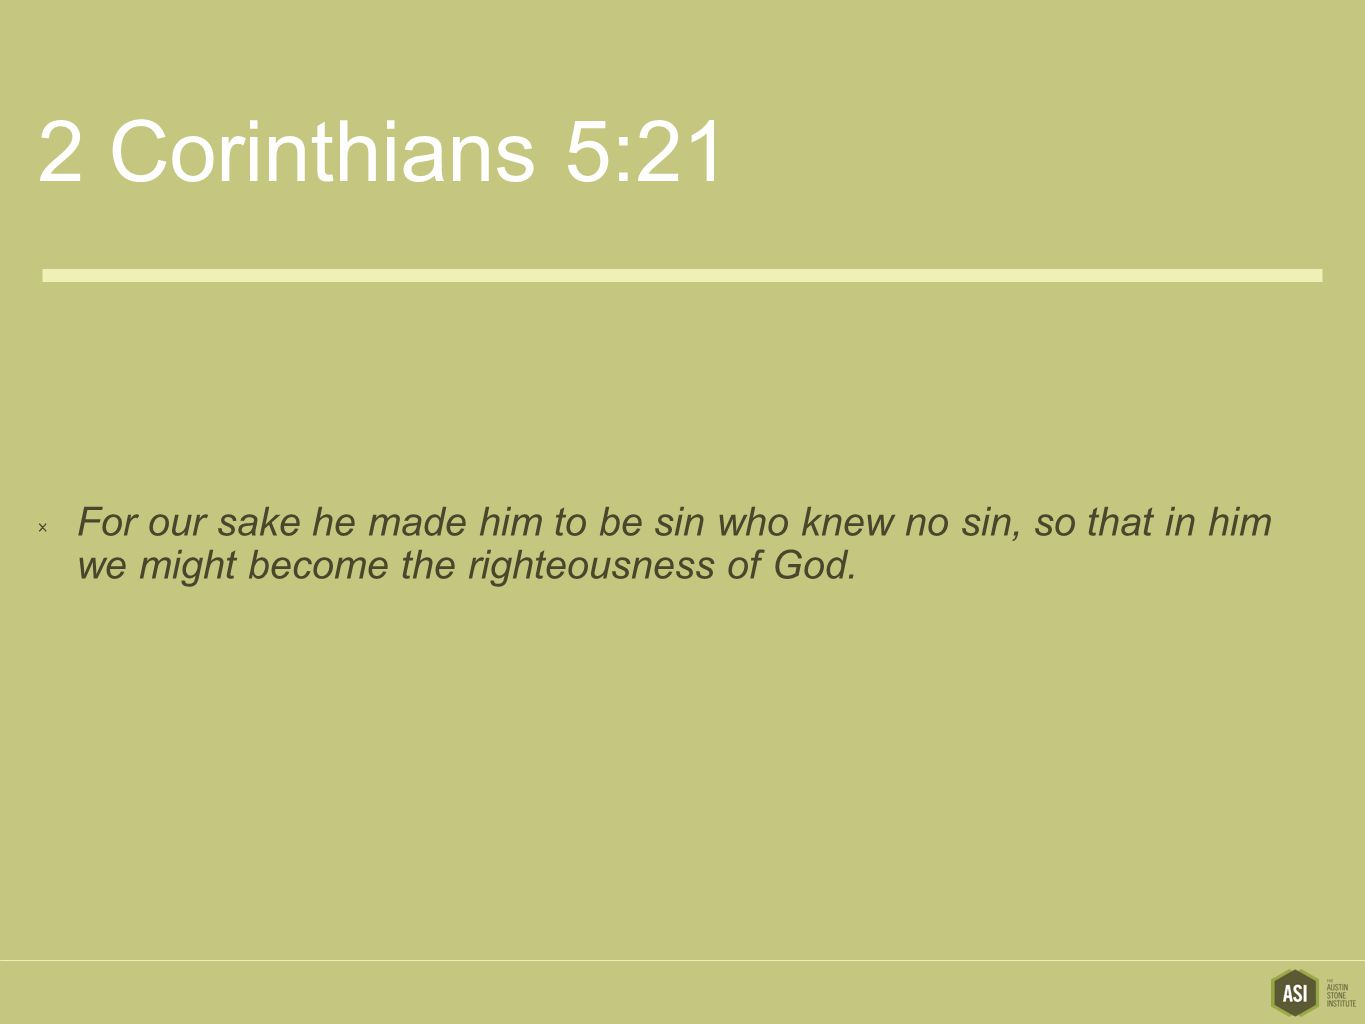 2 Corinthians 5:21  For our sake he made him to be sin who knew no sin, so that in him we might become the righteousness of God.